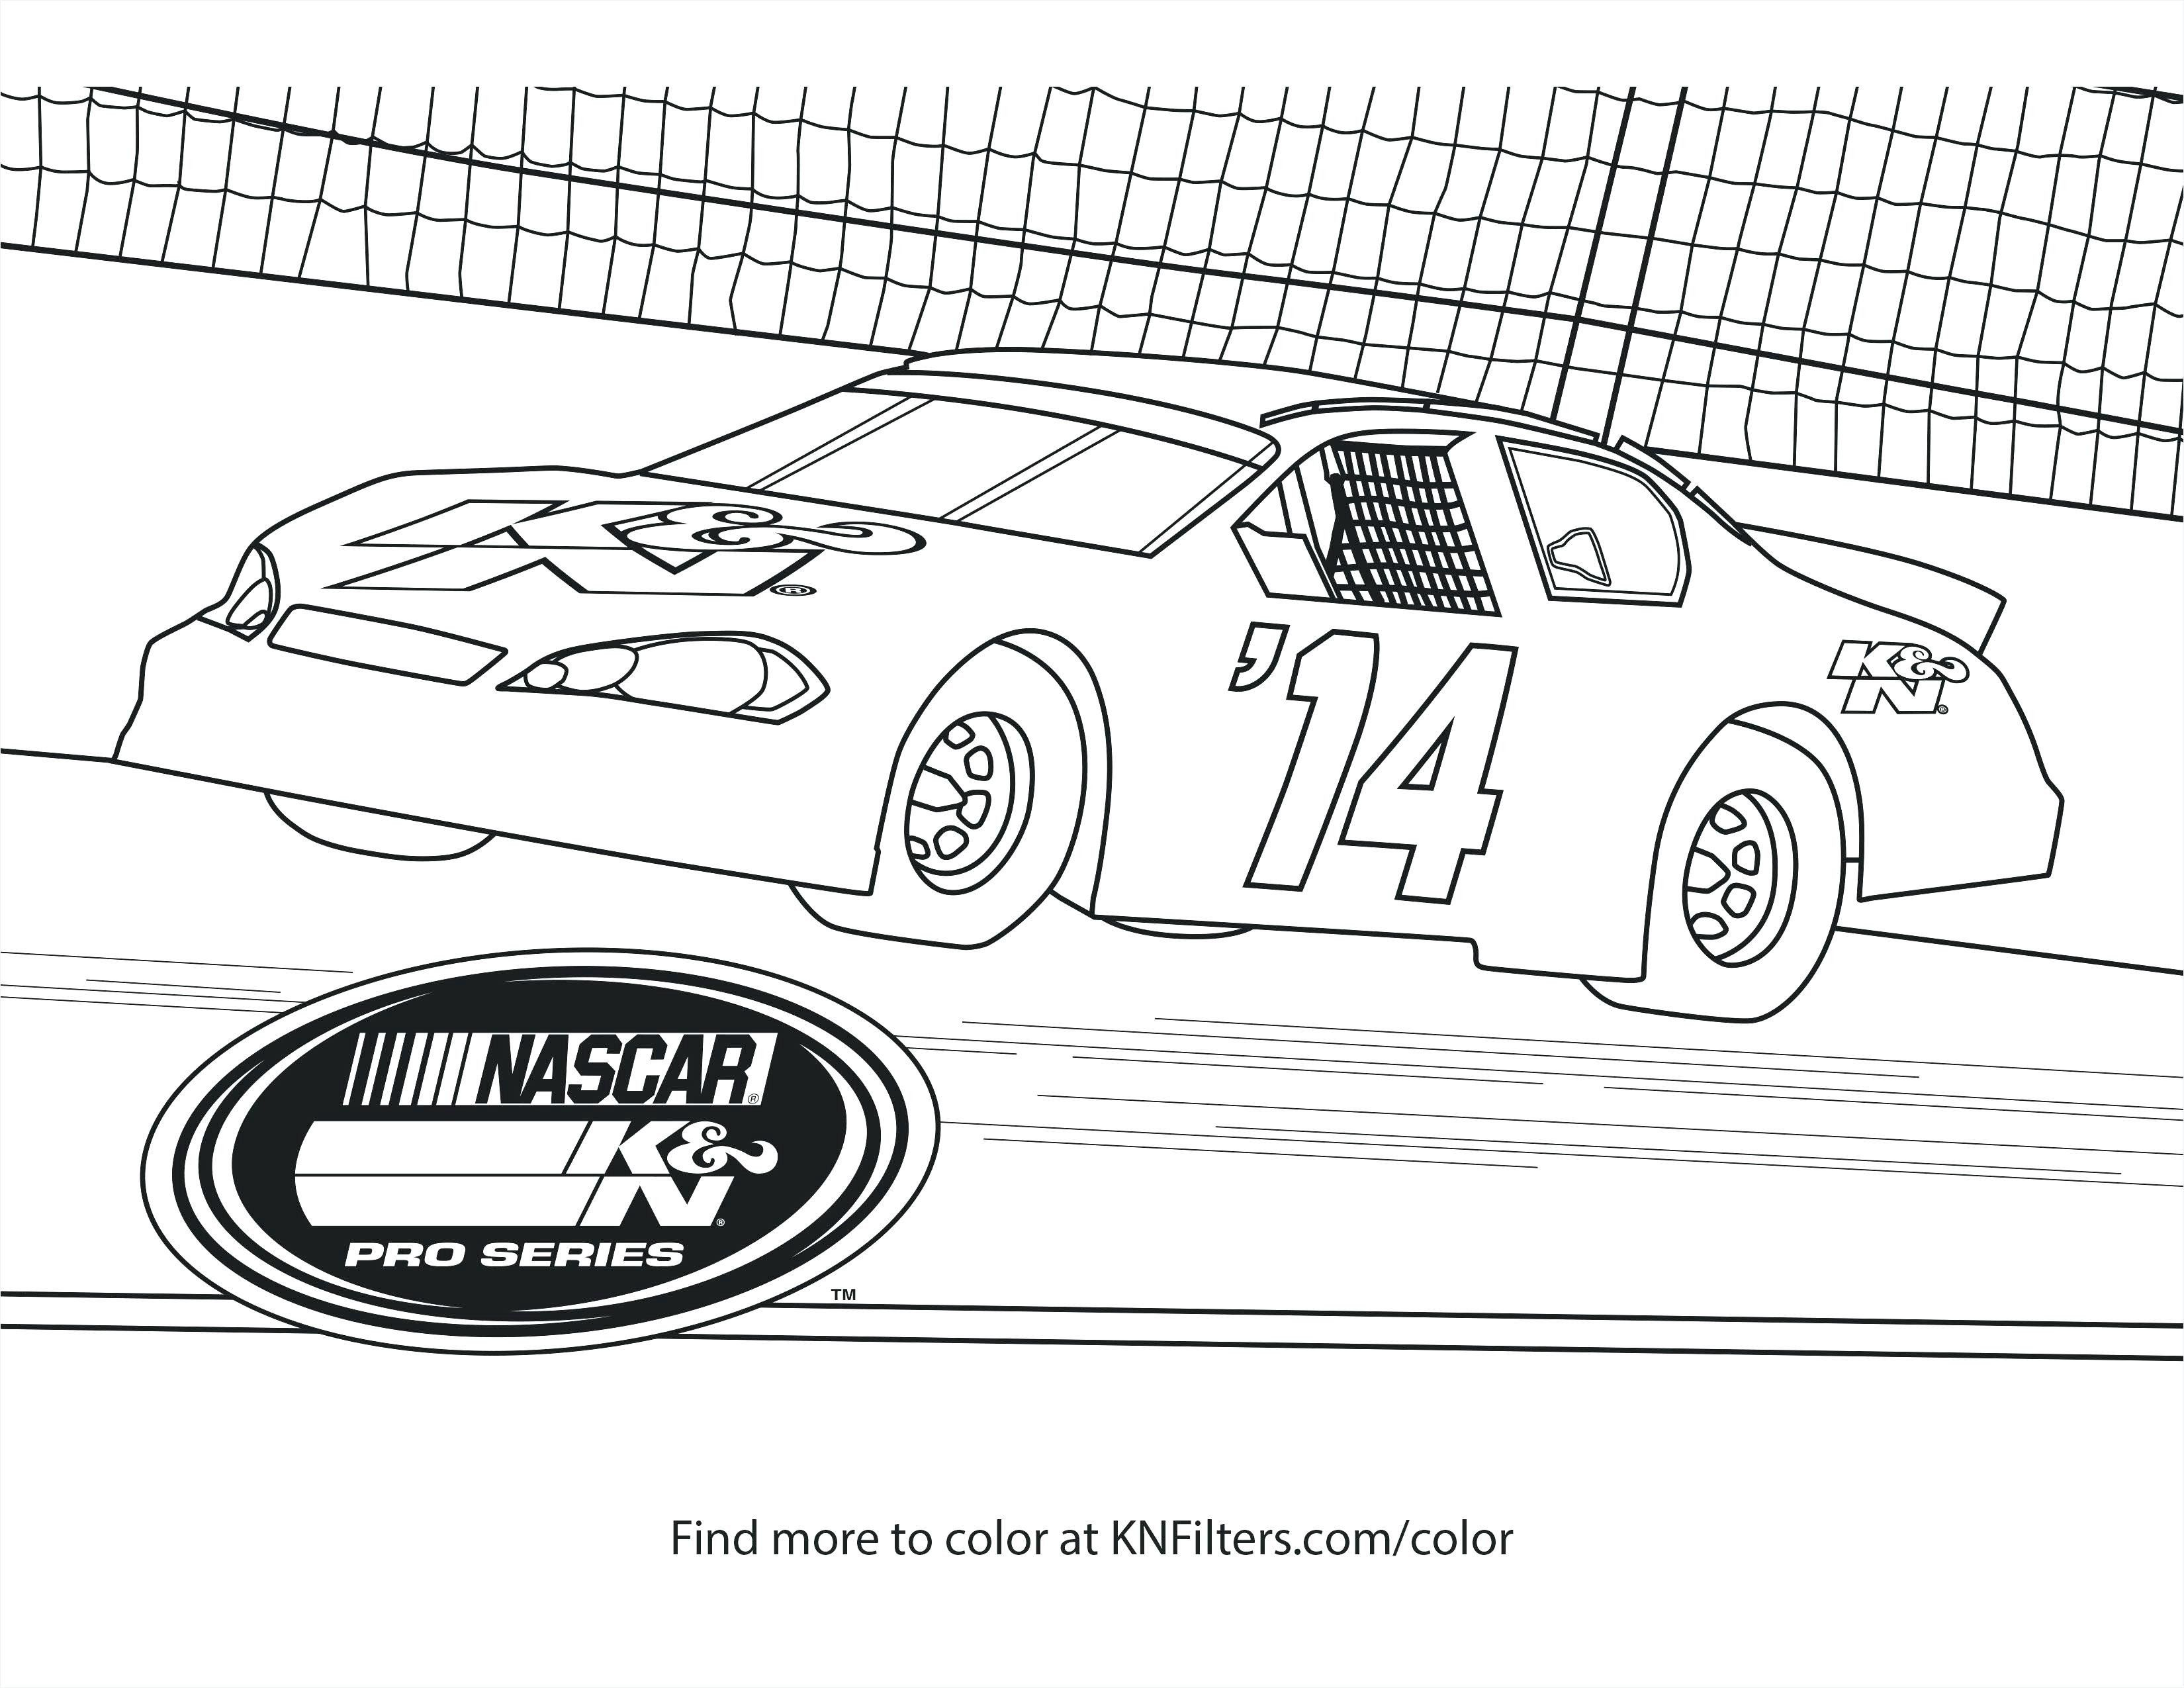 Race Car Coloring Pages Luxury Nascar Coloring Pages 24